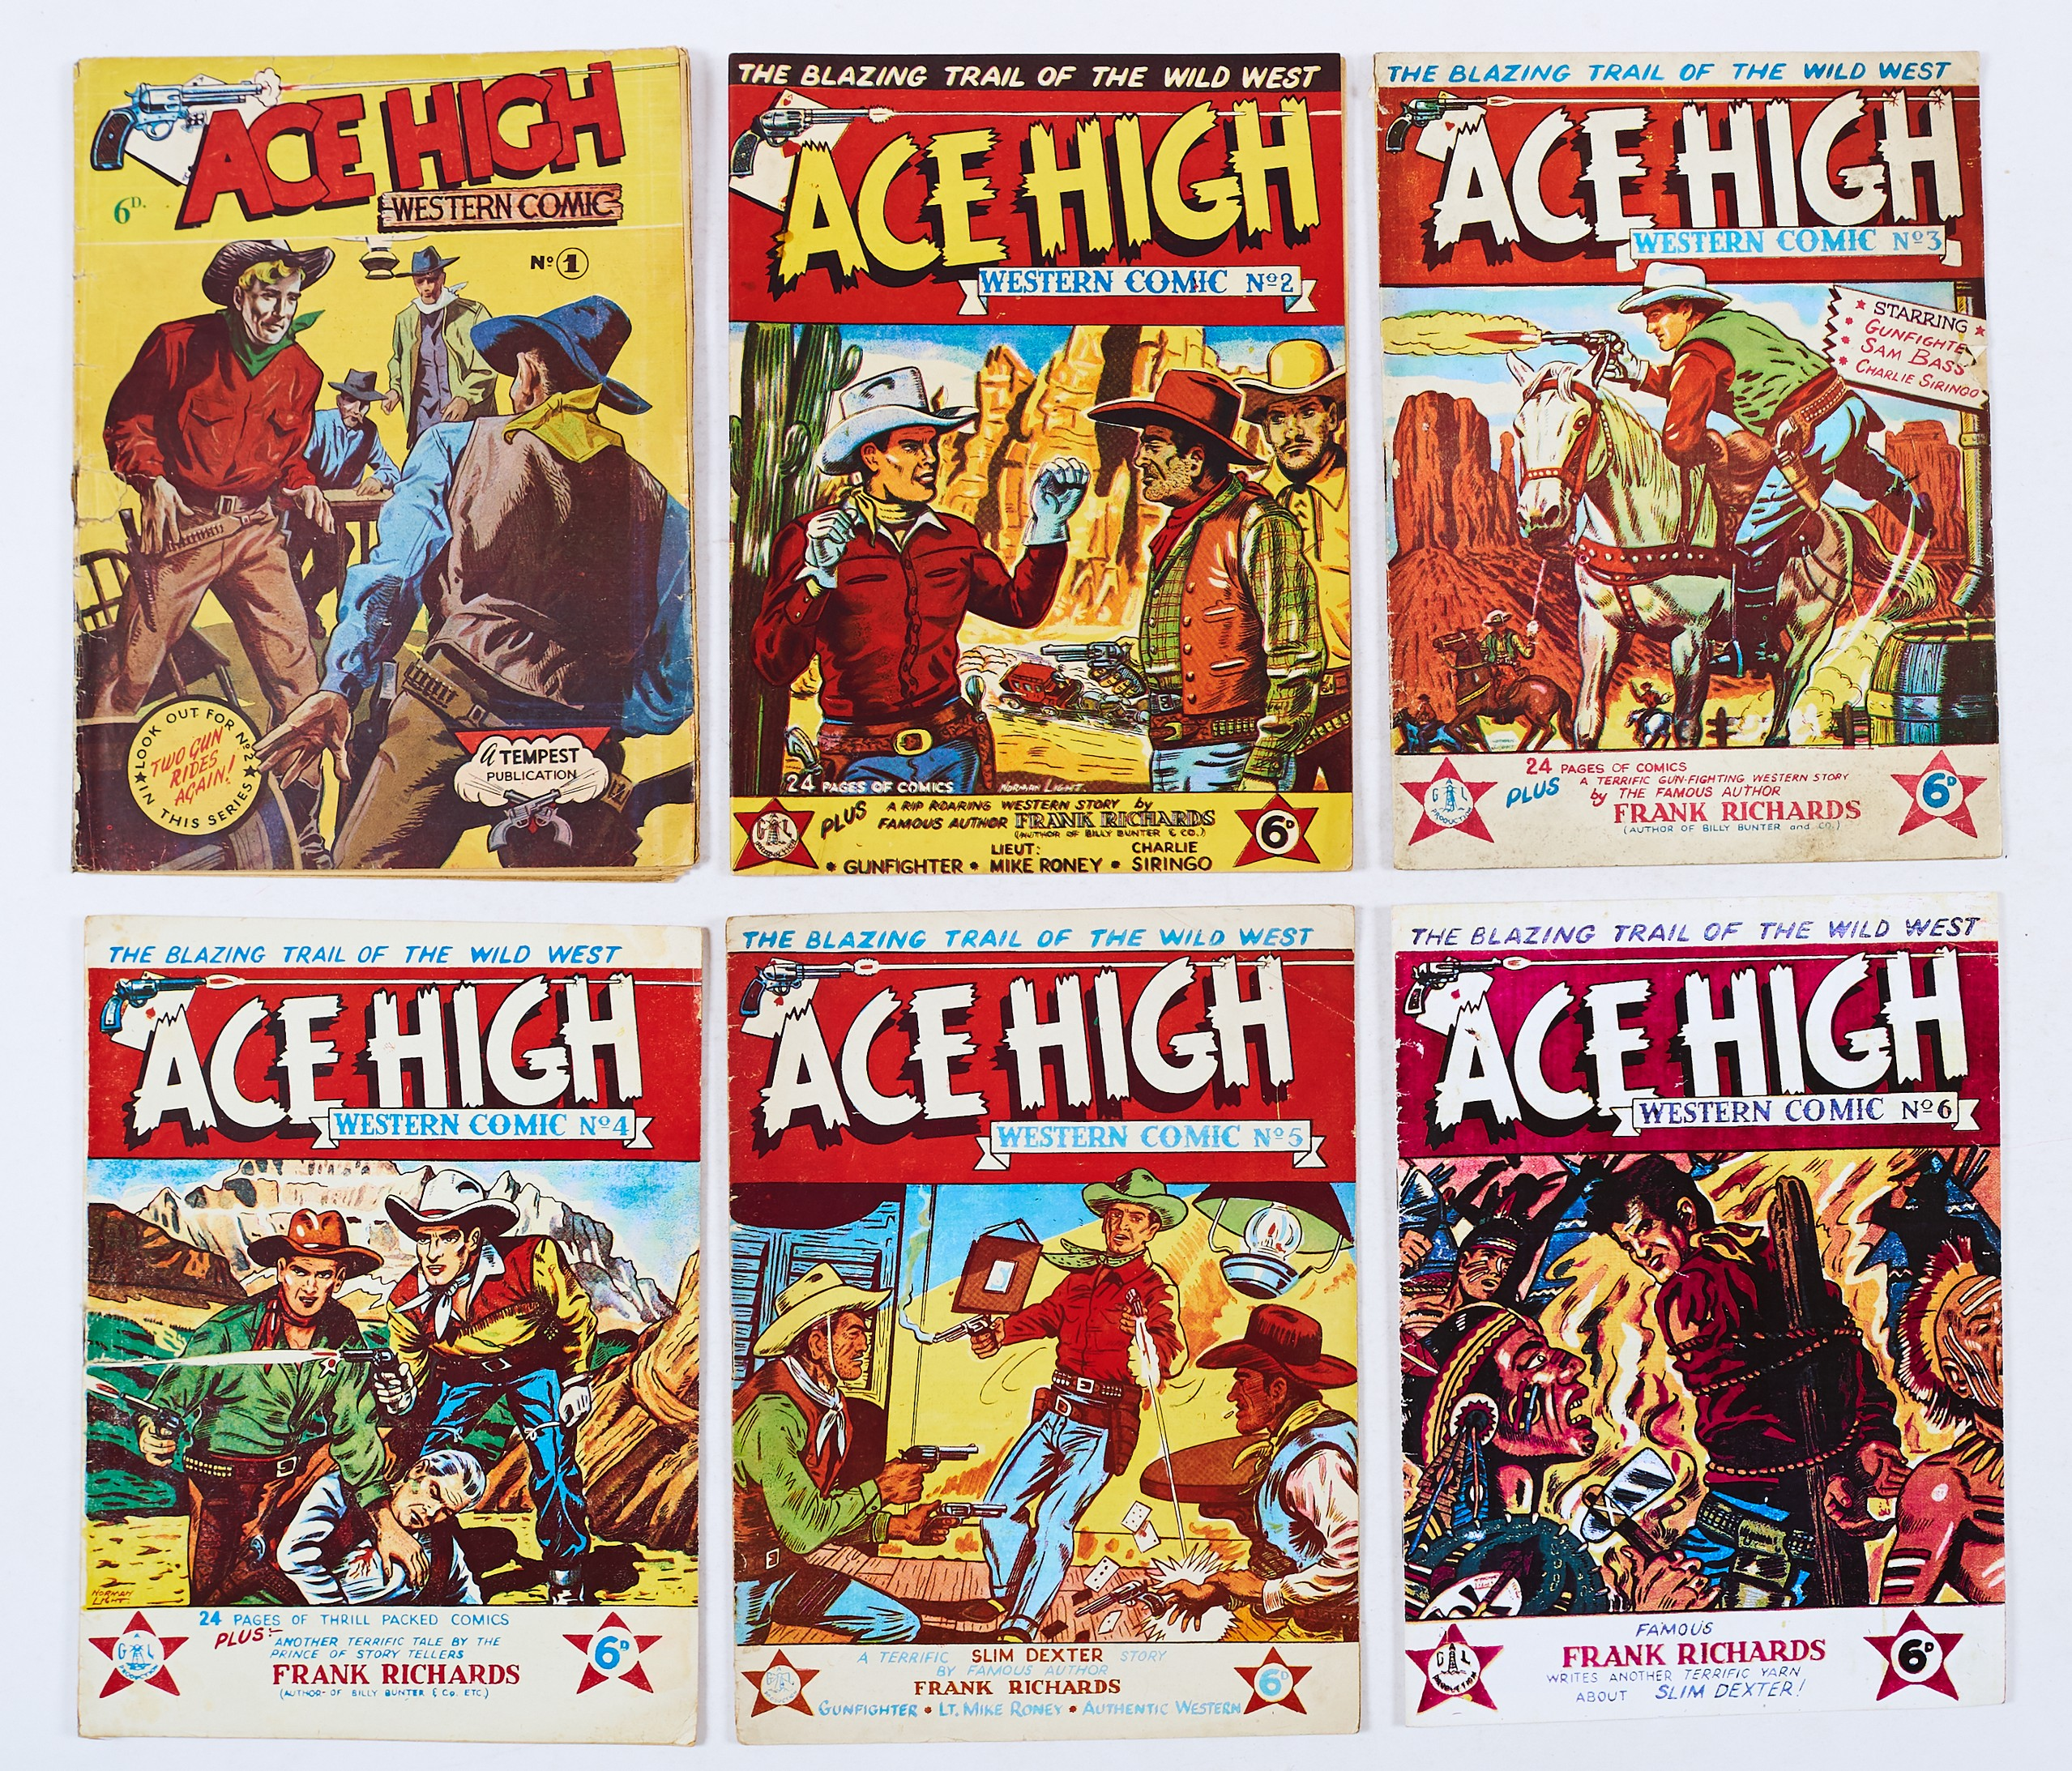 Lot 51 - Ace High Western (1950s Gould-Light) 1-5. With No. 6 facsimile. With art by Norman Light, Ron